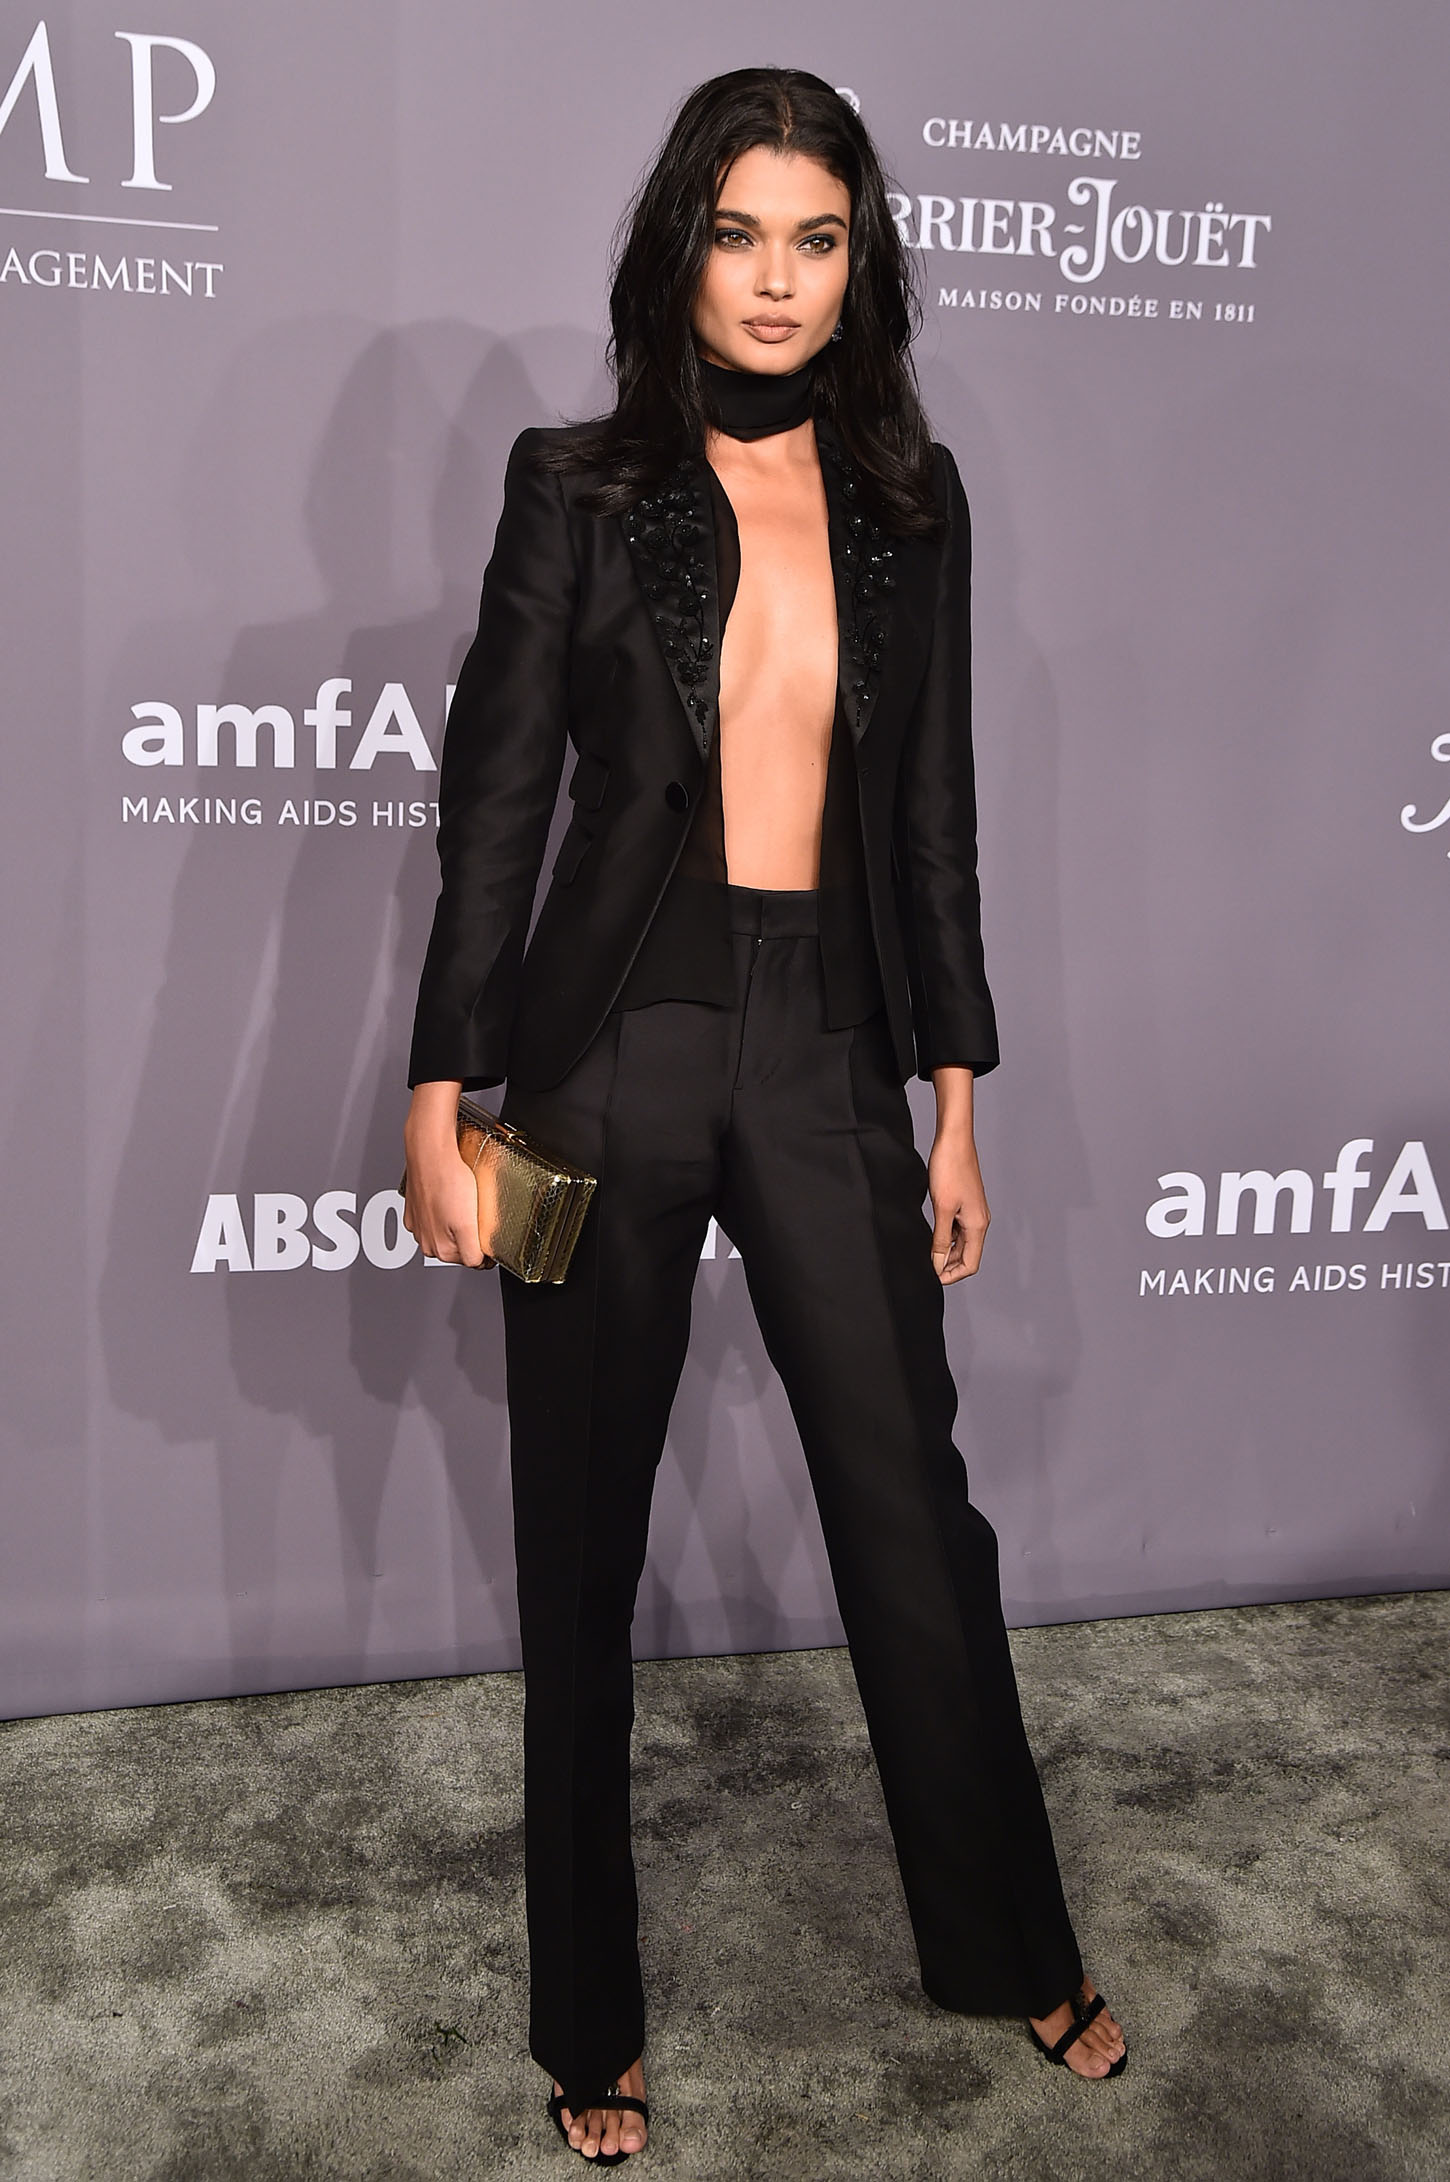 NEW YORK, NY - FEBRUARY 07:  Model Daniela Braga attends the 2018 amfAR Gala New York at Cipriani Wall Street on February 7, 2018 in New York City.  (Photo by Theo Wargo/Getty Images)